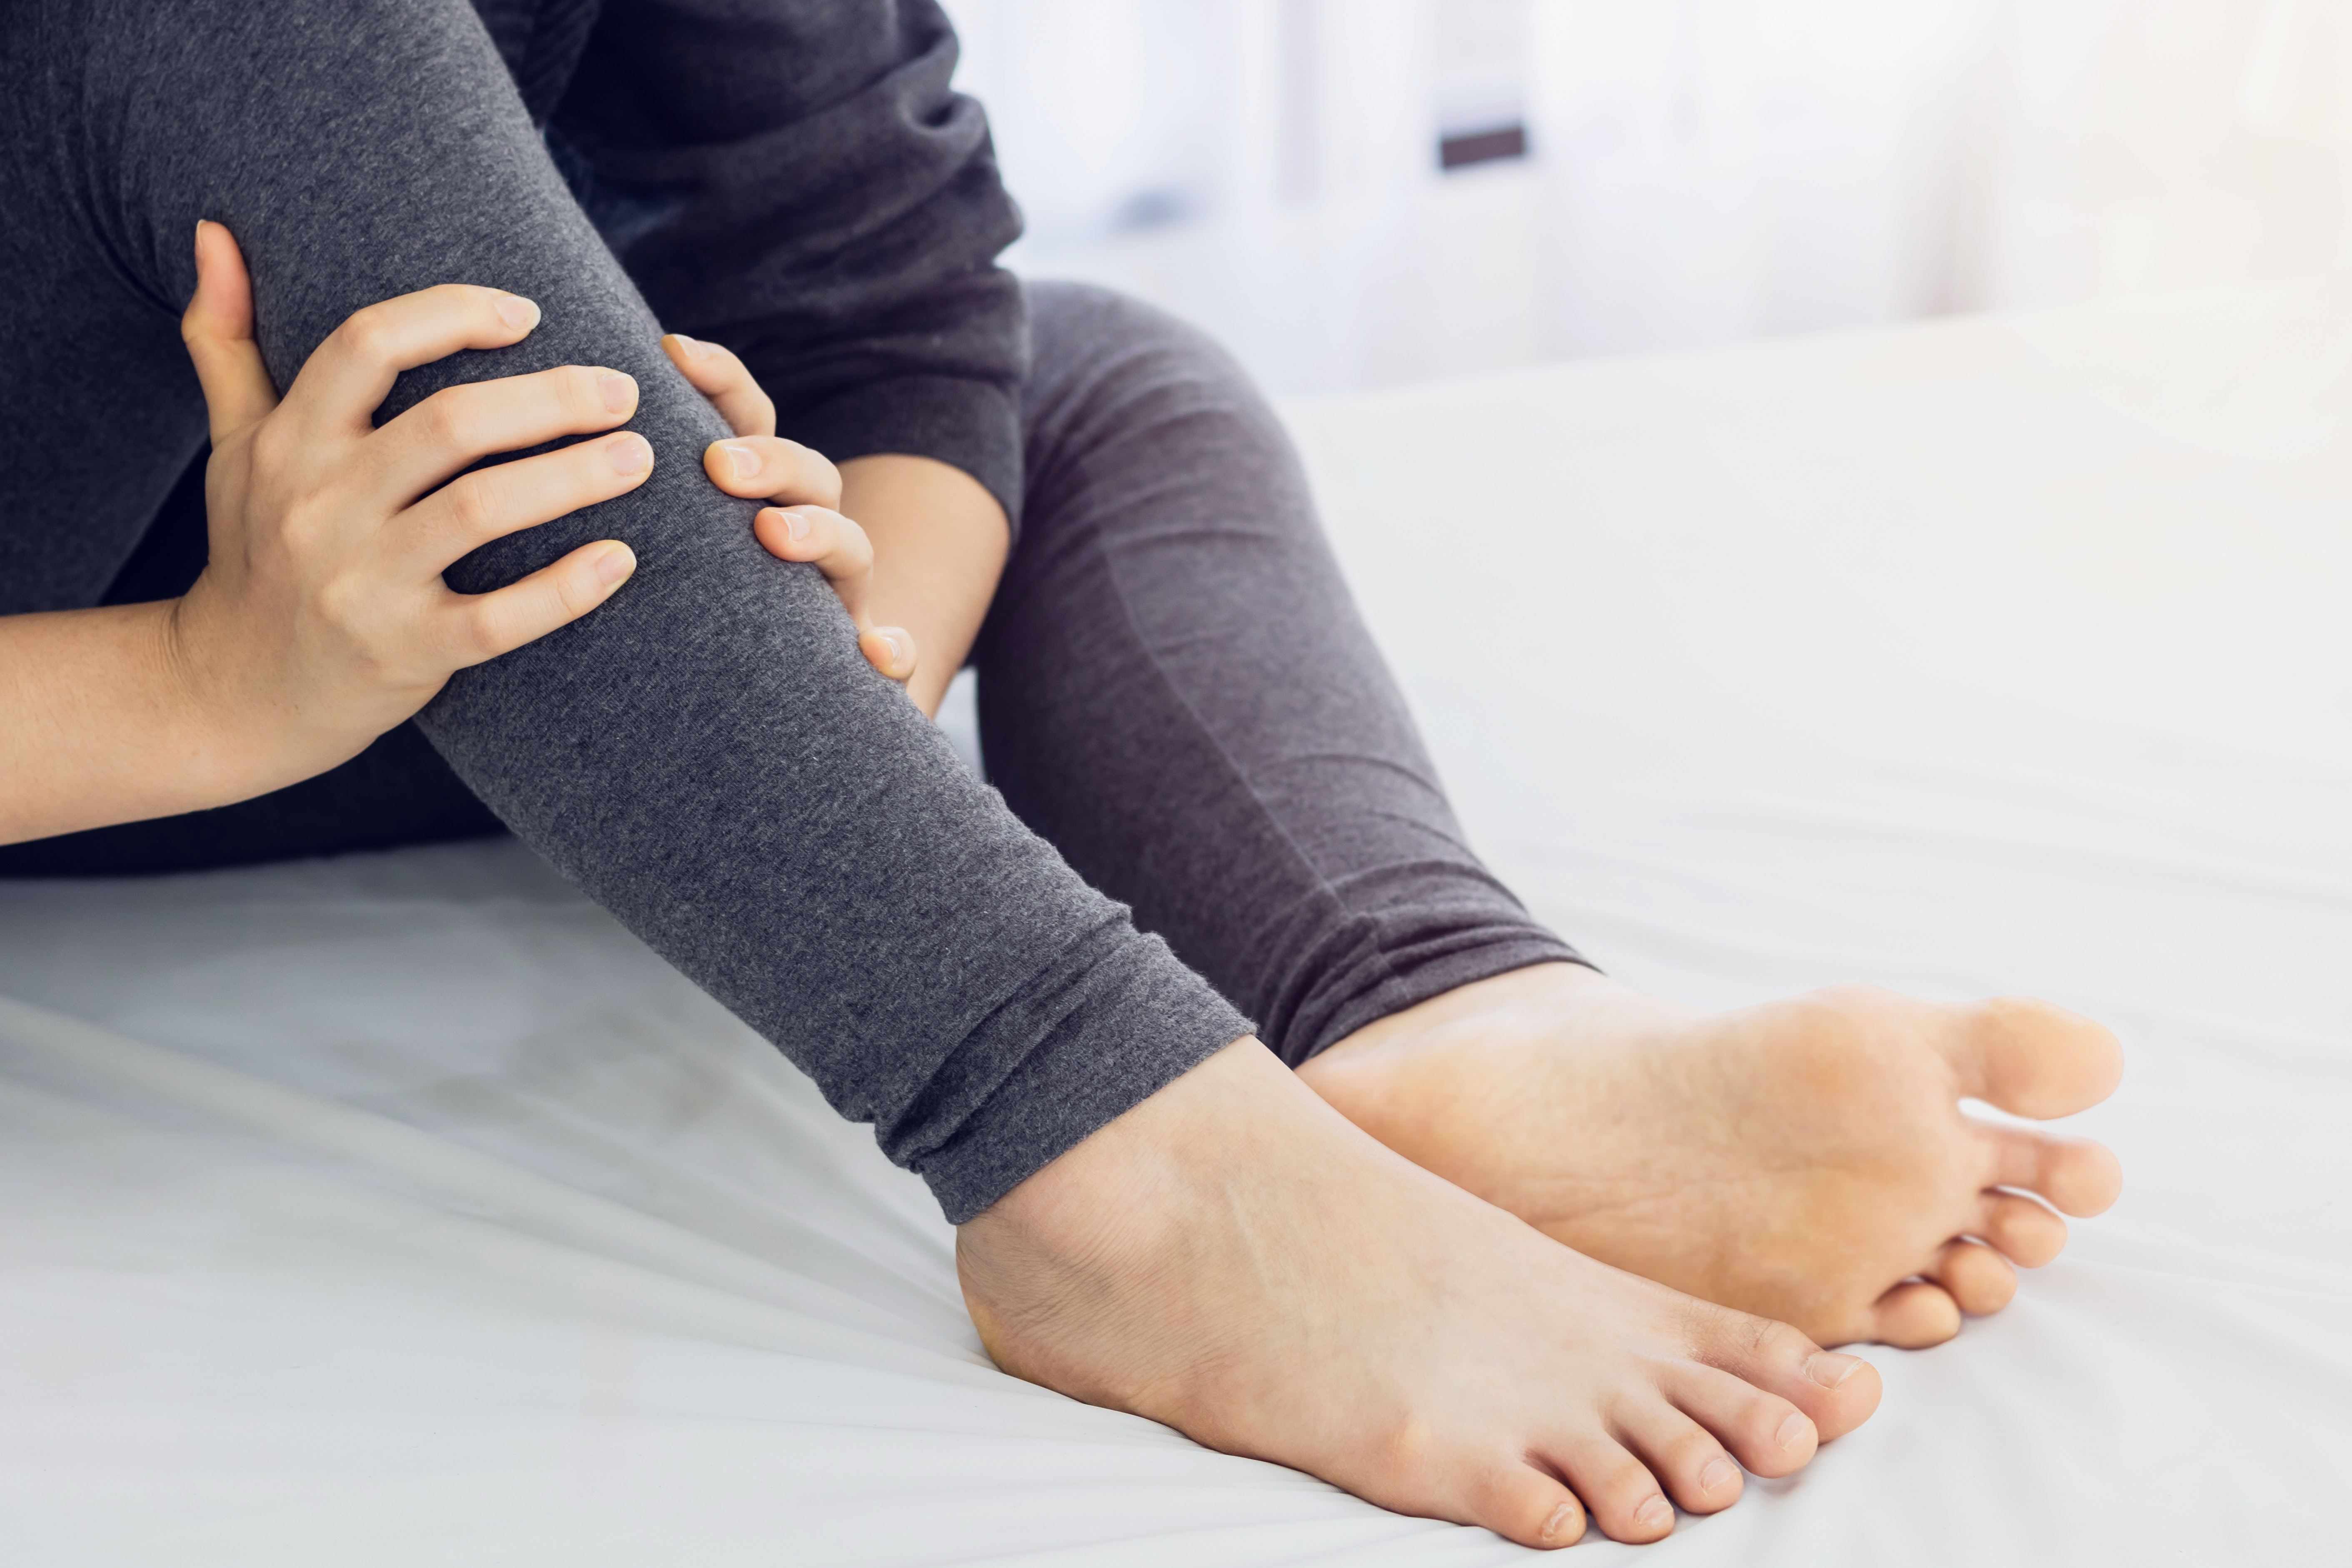 Why Do I Wake Up With Leg Cramps? Doctors Are Still Baffled By This One